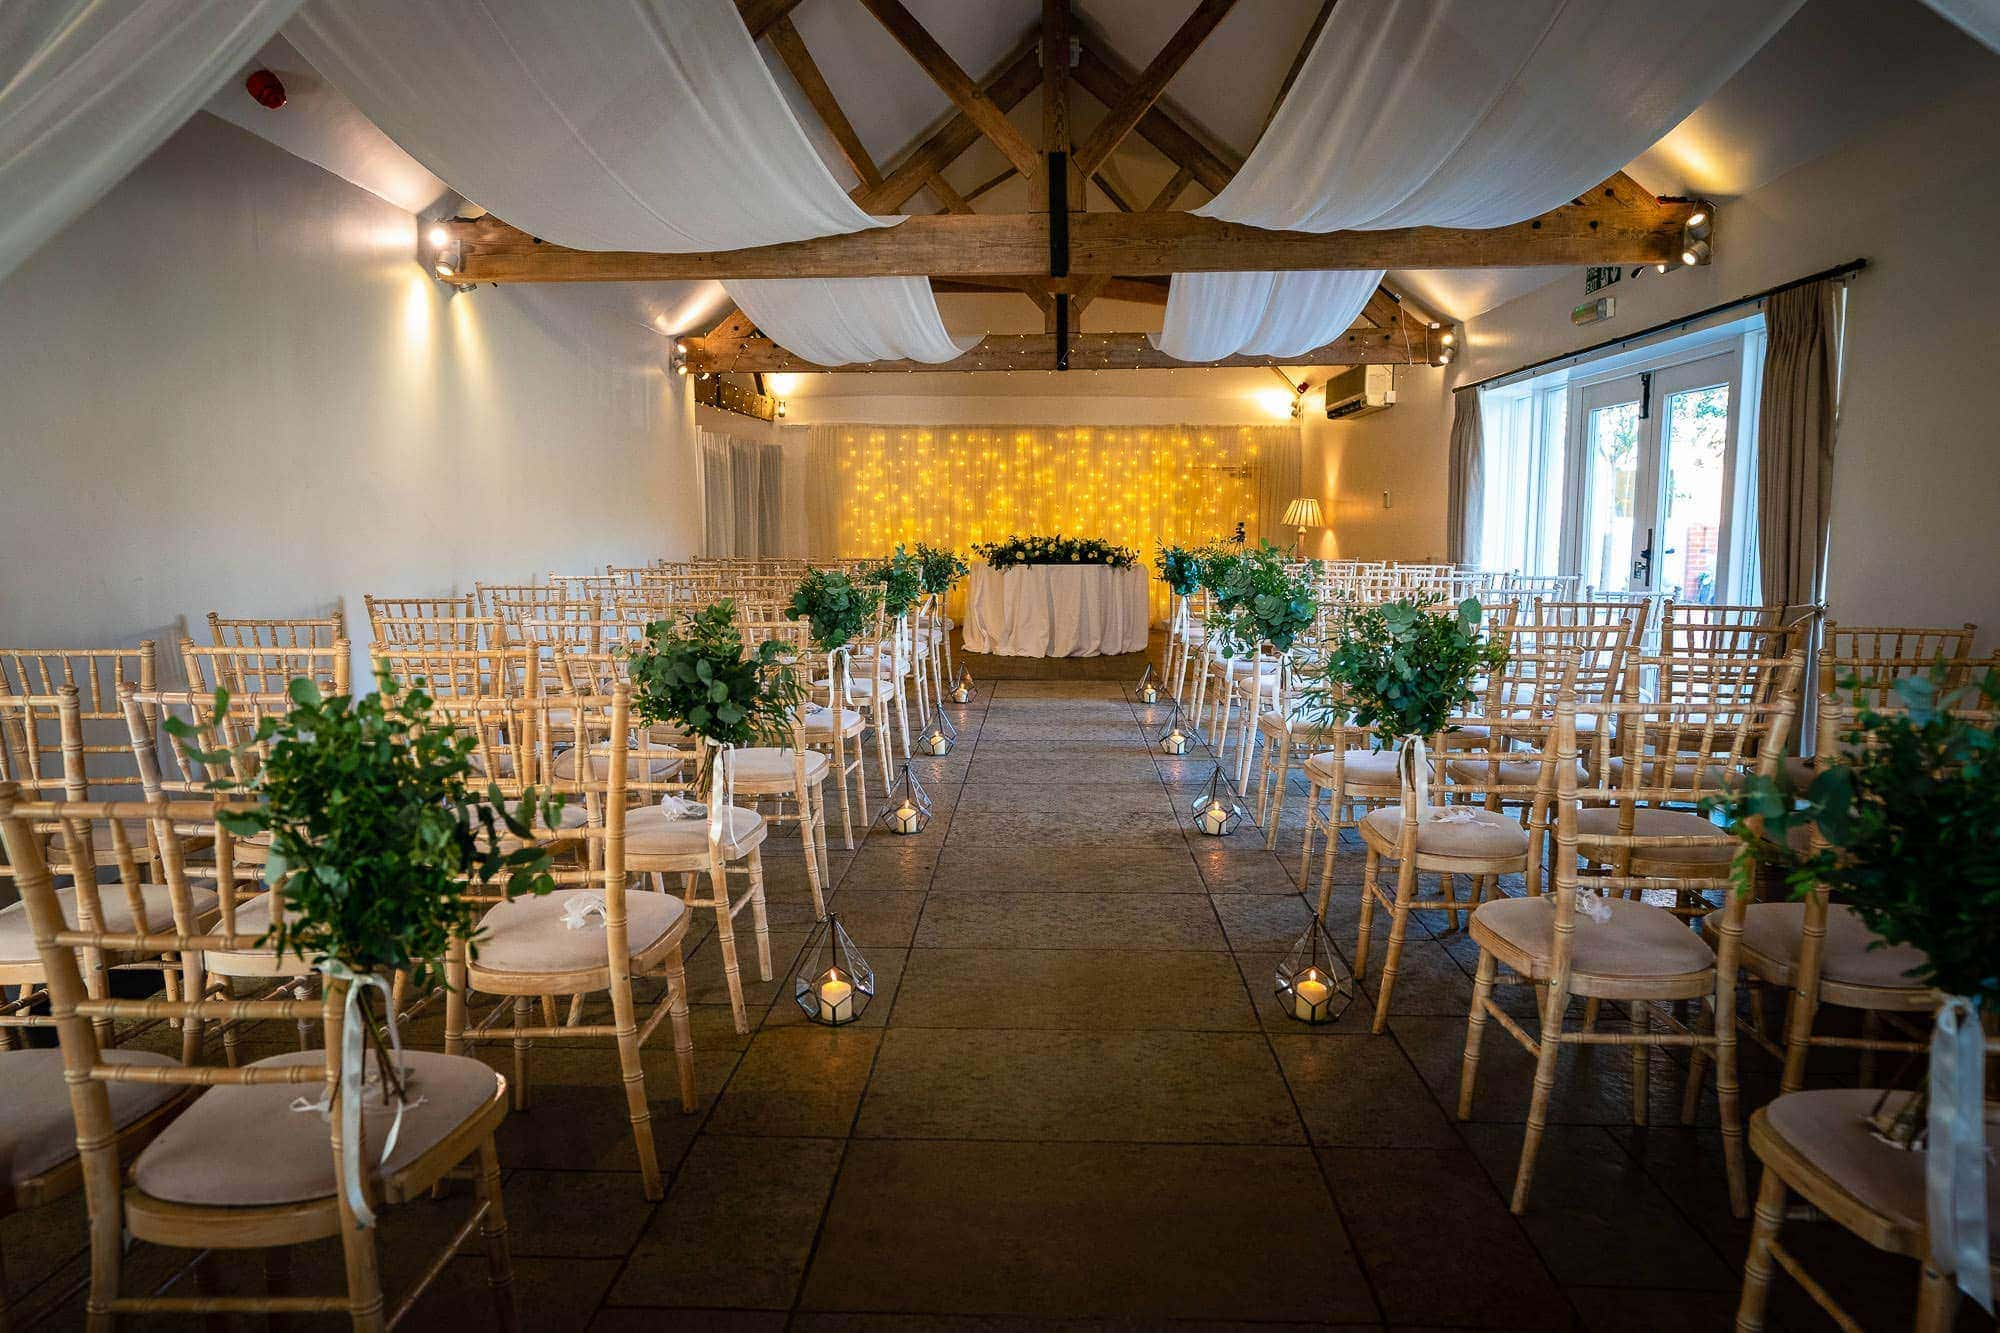 The Meadow Barn at Farbridge - Farbridge Wedding Ceremony